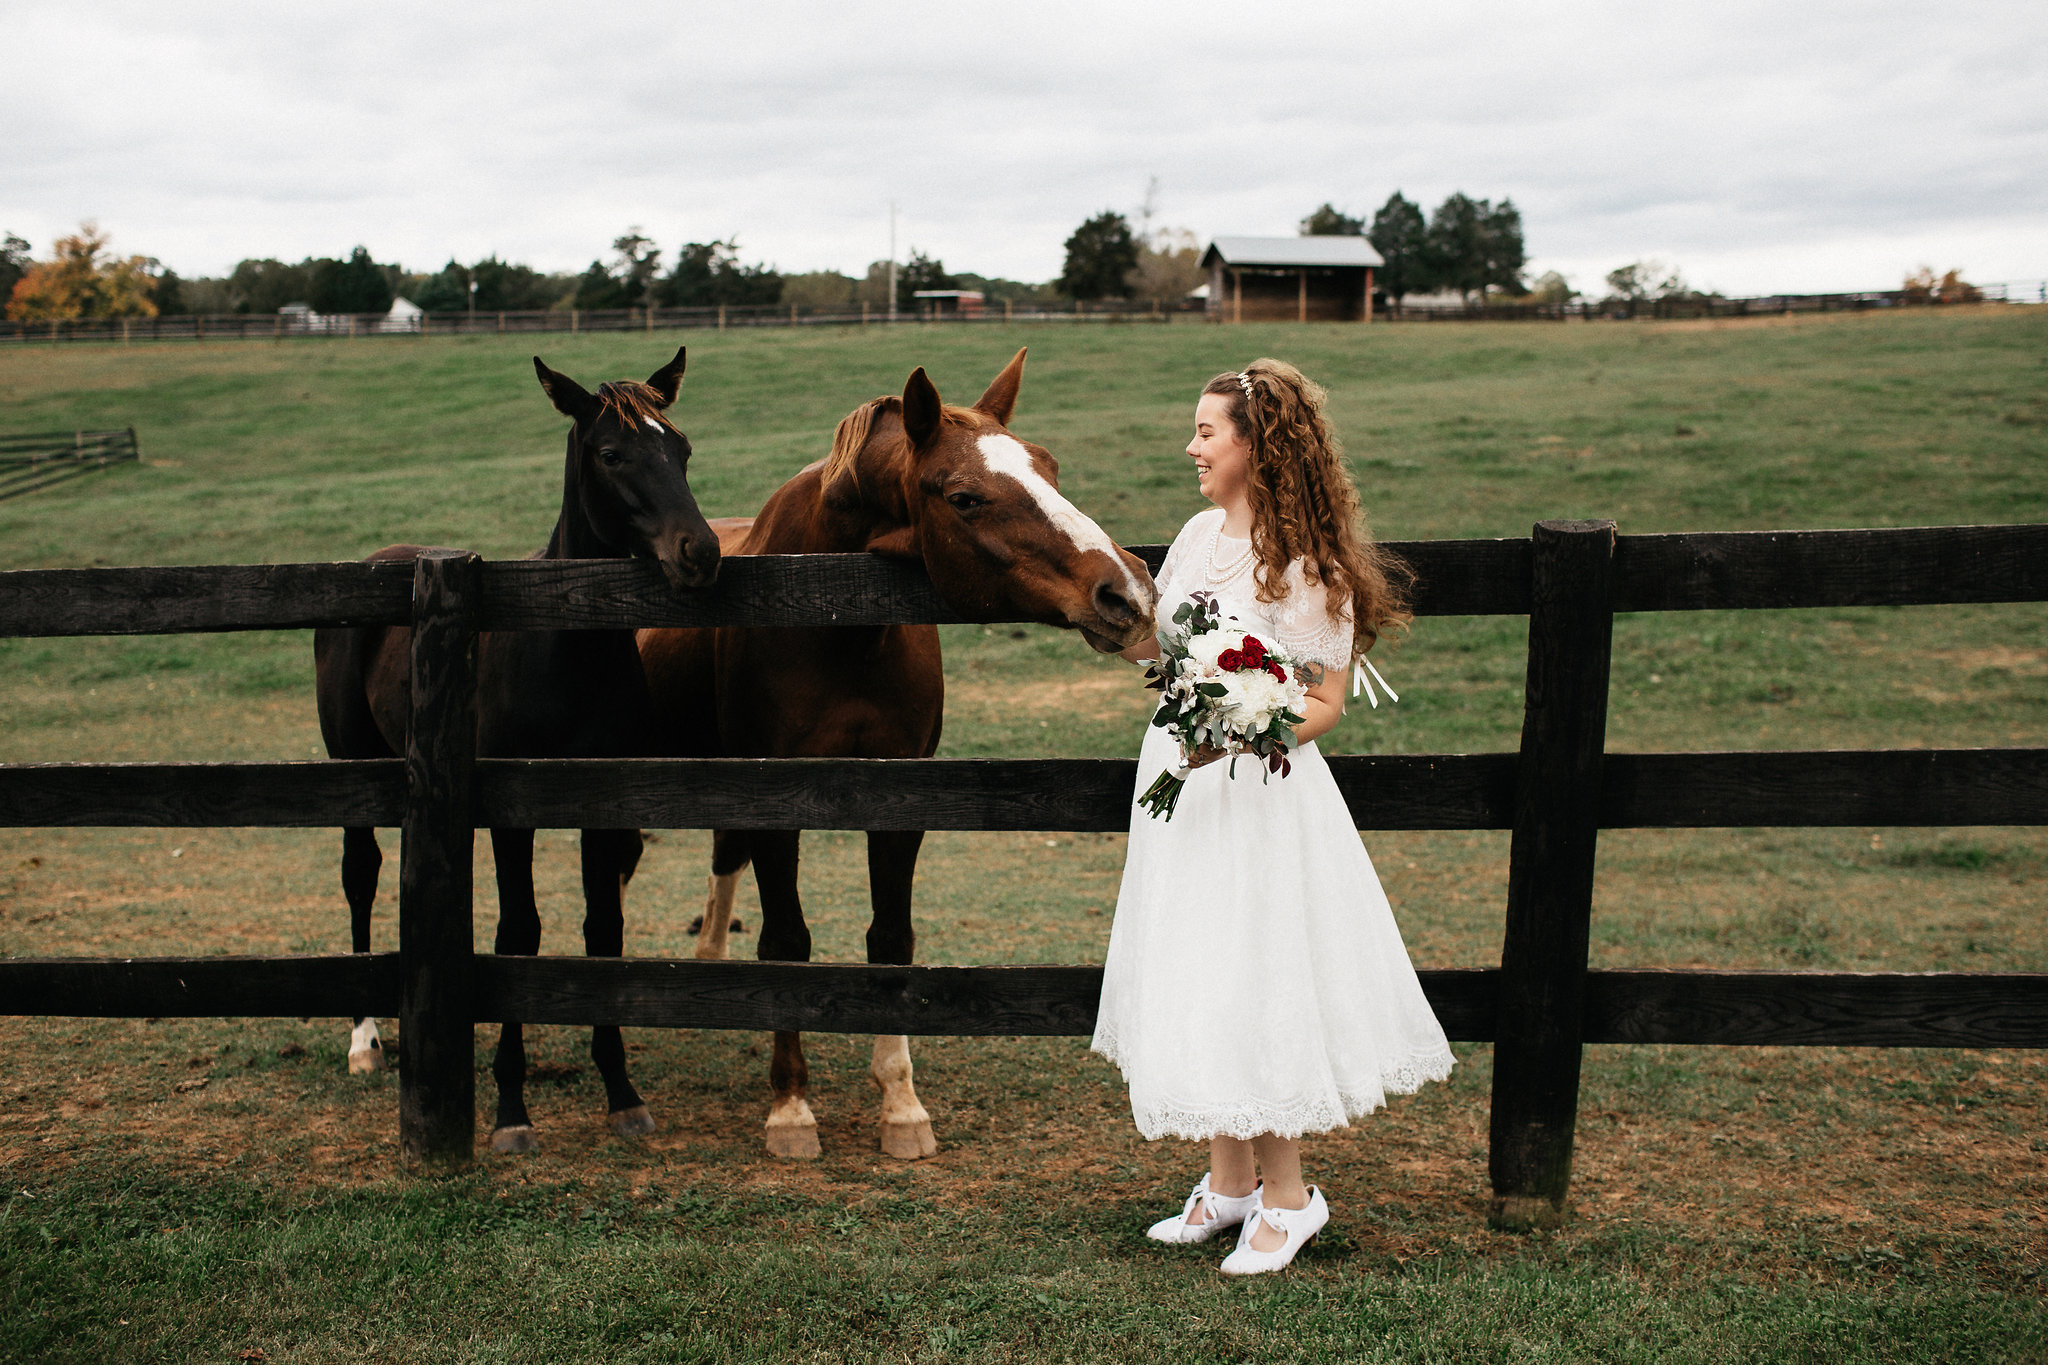 Caitlin&CodyMarried2017-11-03at19.19.39PM200.jpg